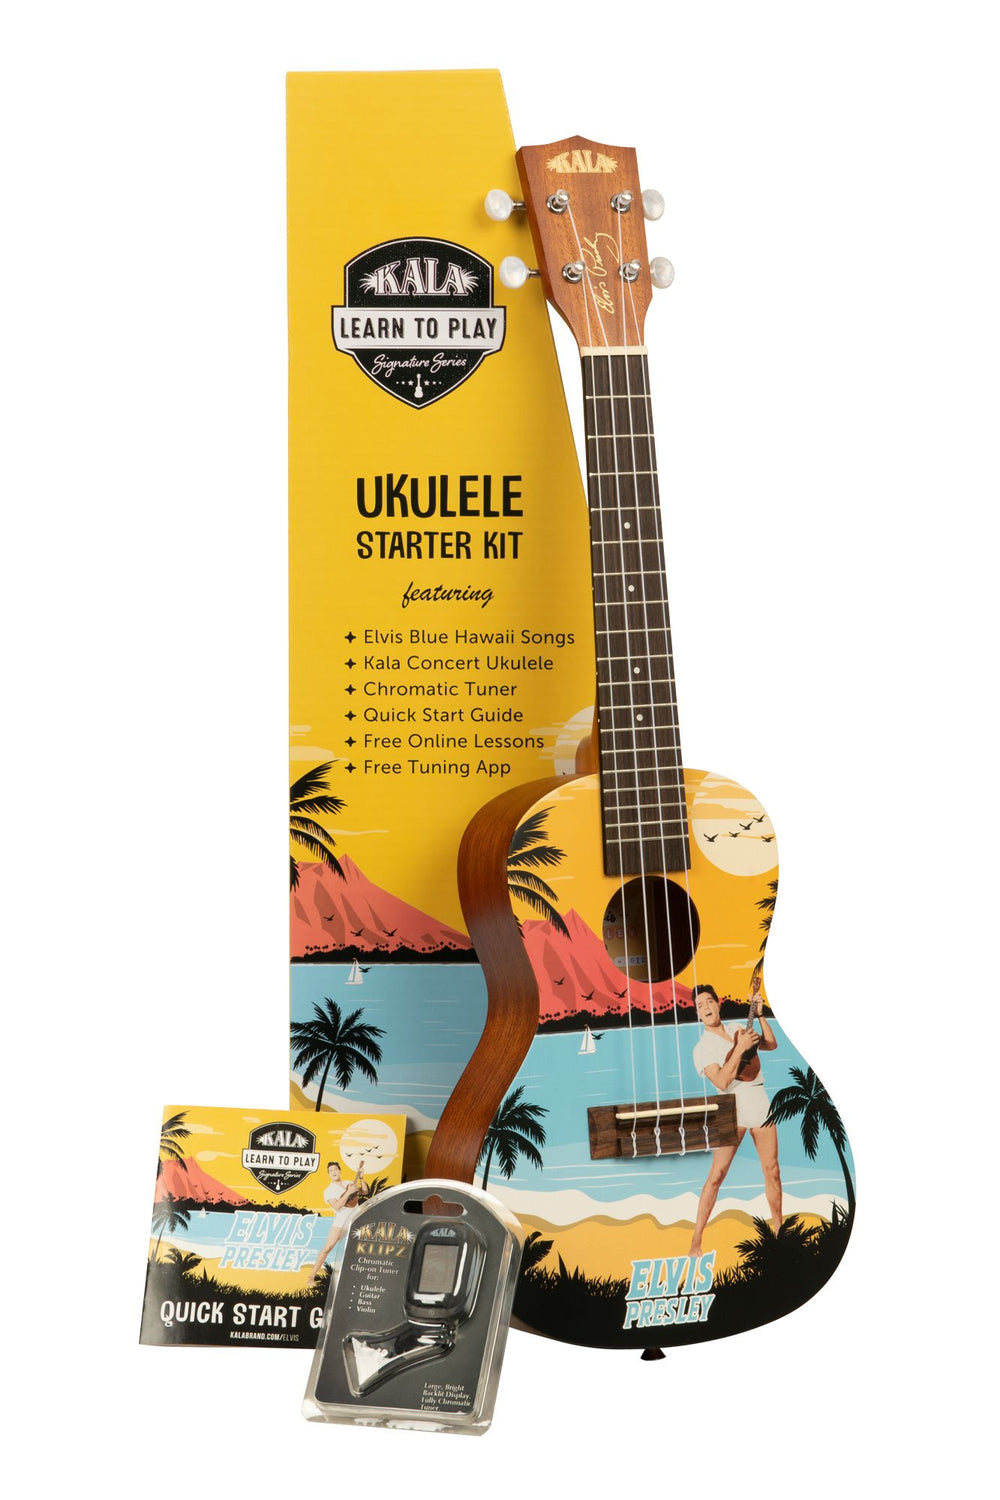 [SUPER SPECIAL] All 3 Elvis Concert Ukuleles by Kala for $199 (Save $100) Blue Hawaii, Viva Las Vegas, and Rockabilly